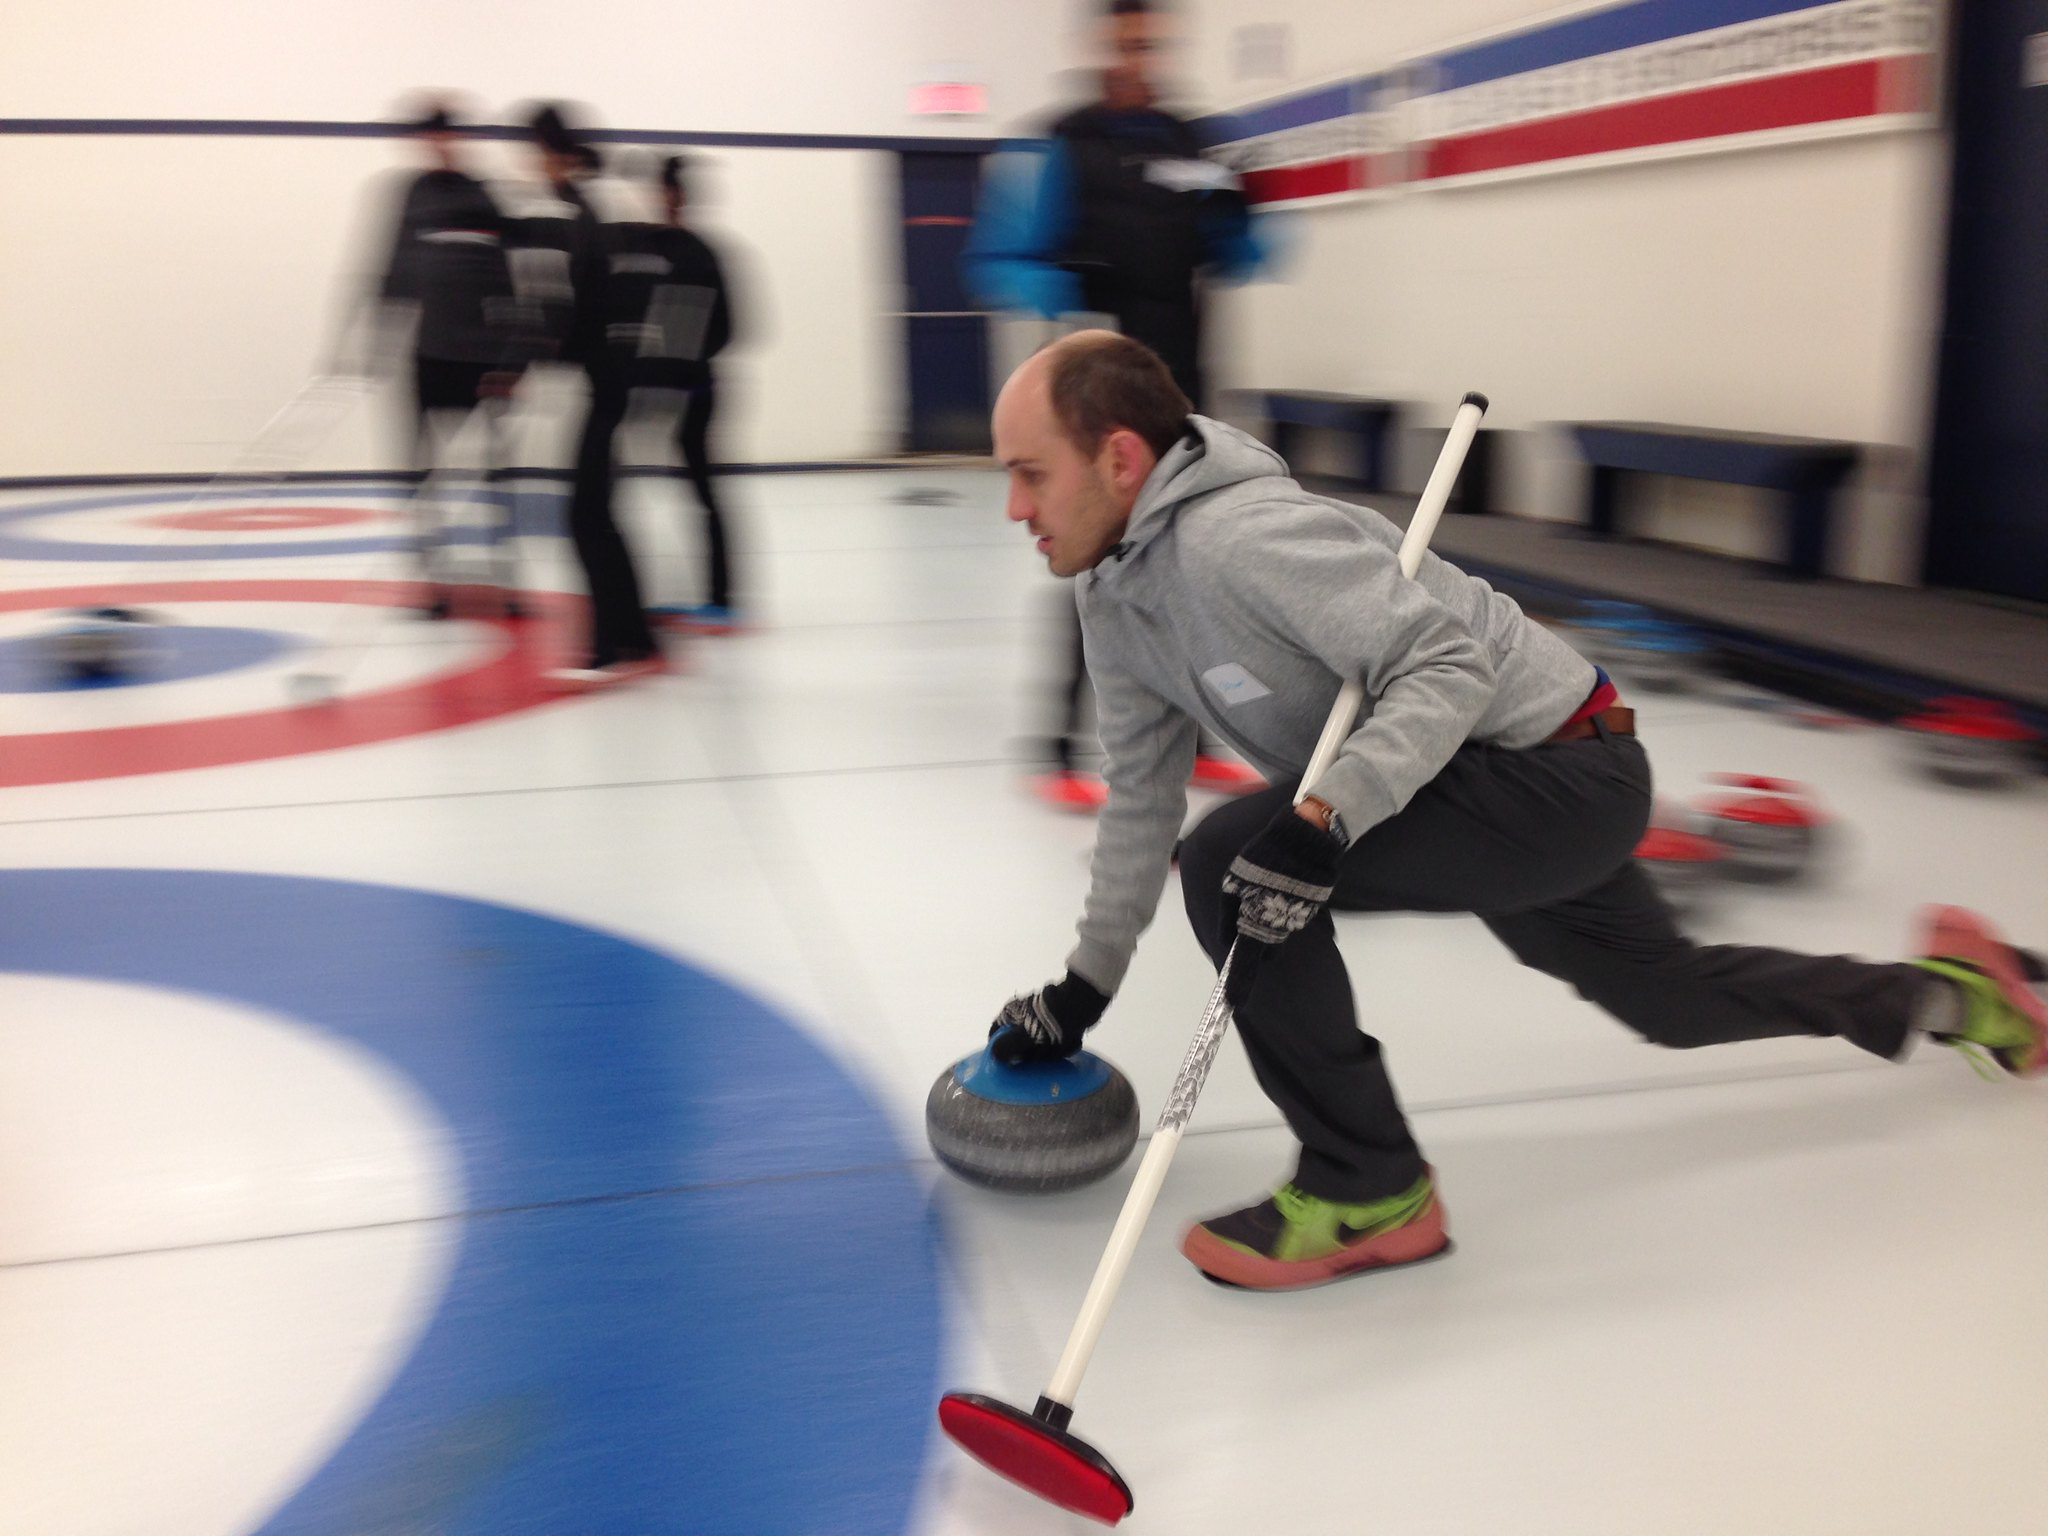 Playing a game of curling for the first time.